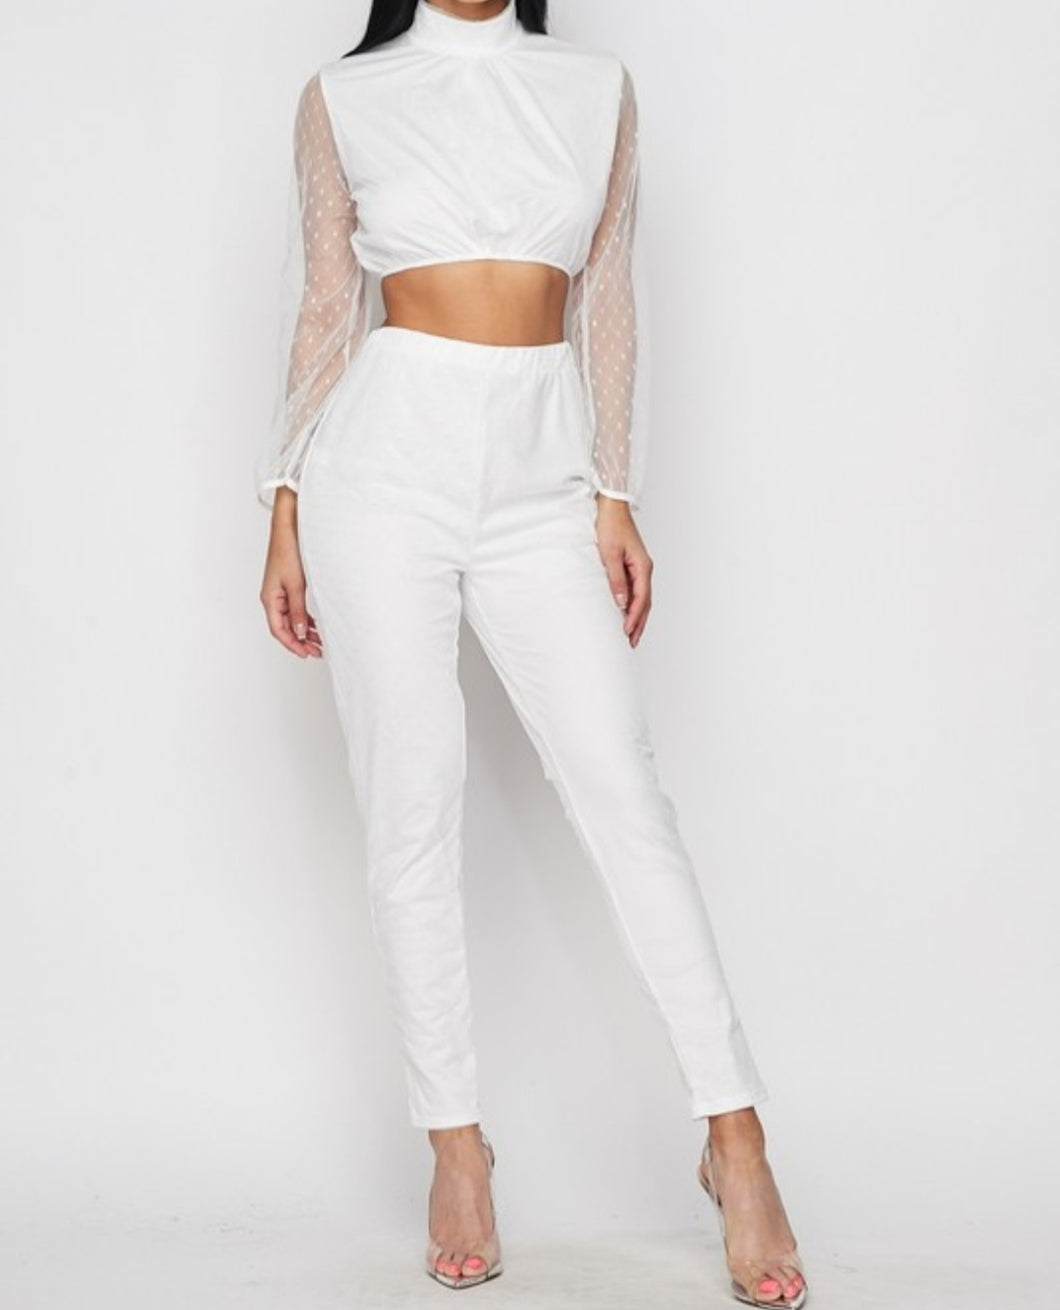 Sheer Sleeve Crop Top & Slim Pants Set - Lookeble